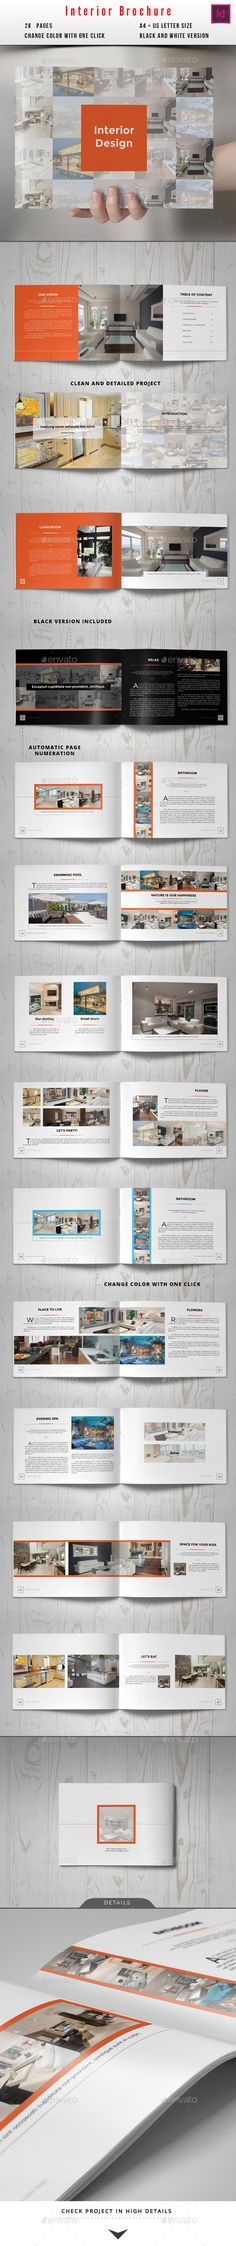 Interior Design Square 3-Fold Brochure V08 Brochures, Brochure - interior design brochure template